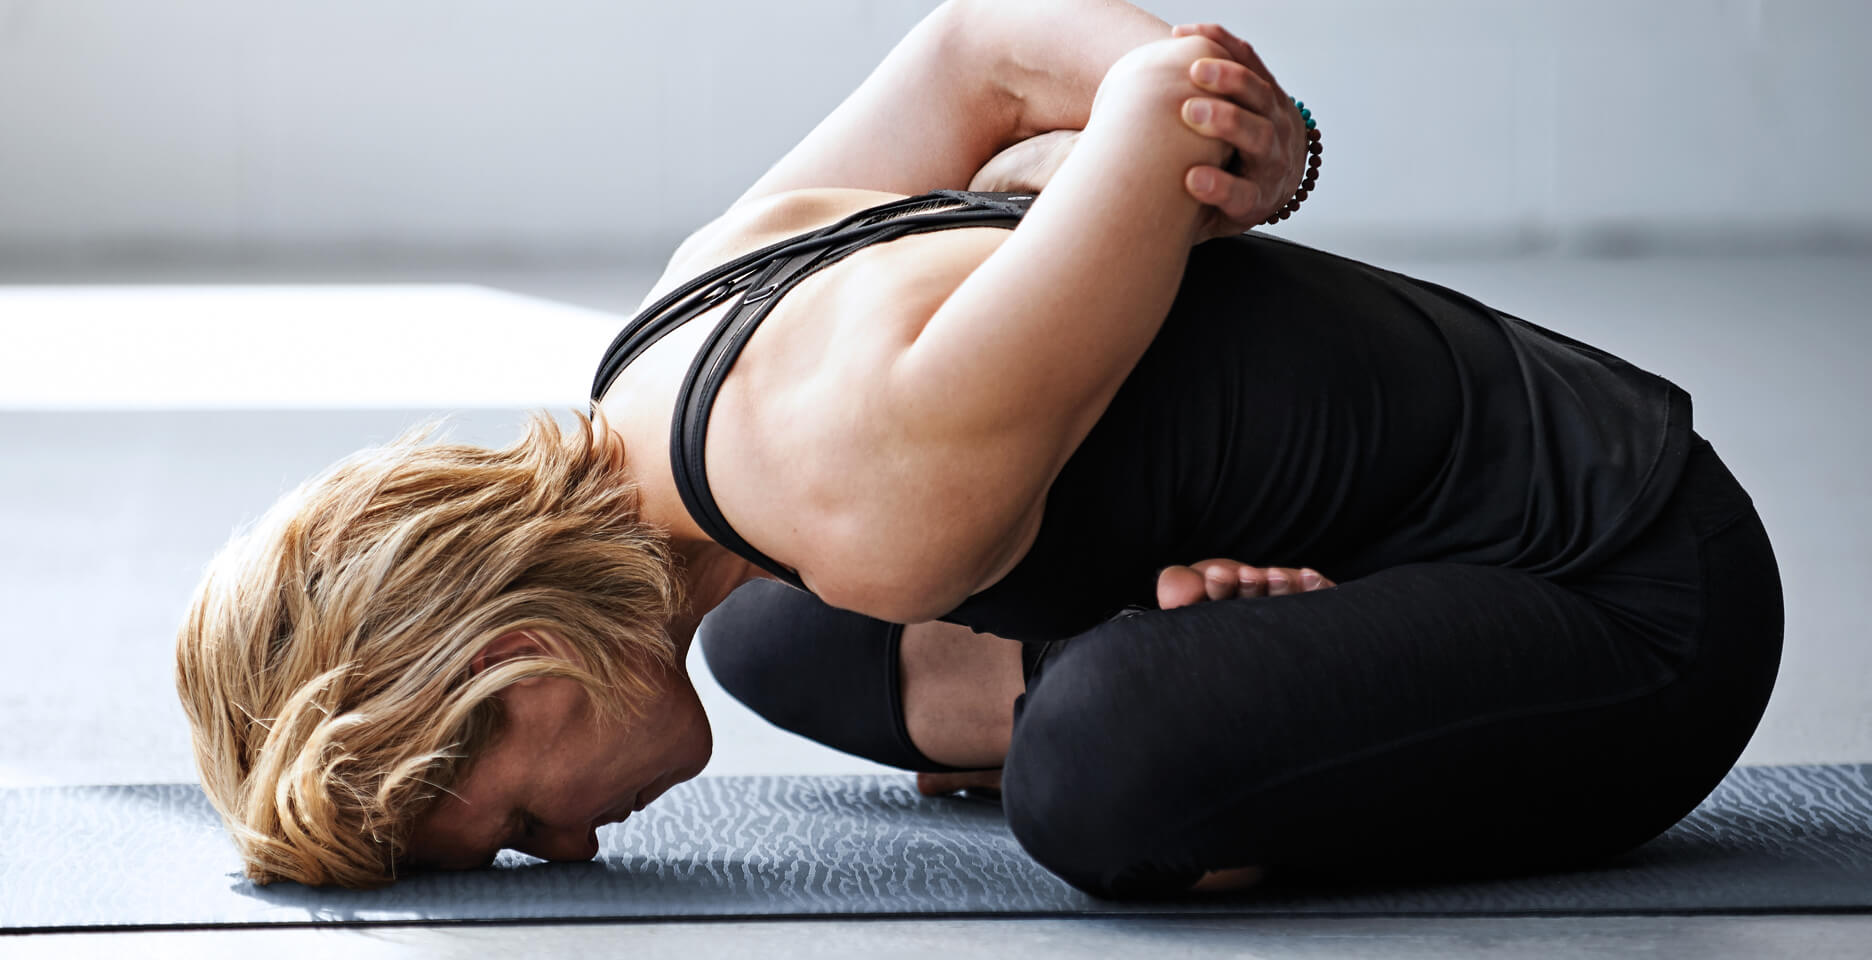 A woman practicing a flexible yoga move in a SURRENDER Yin Yoga Class